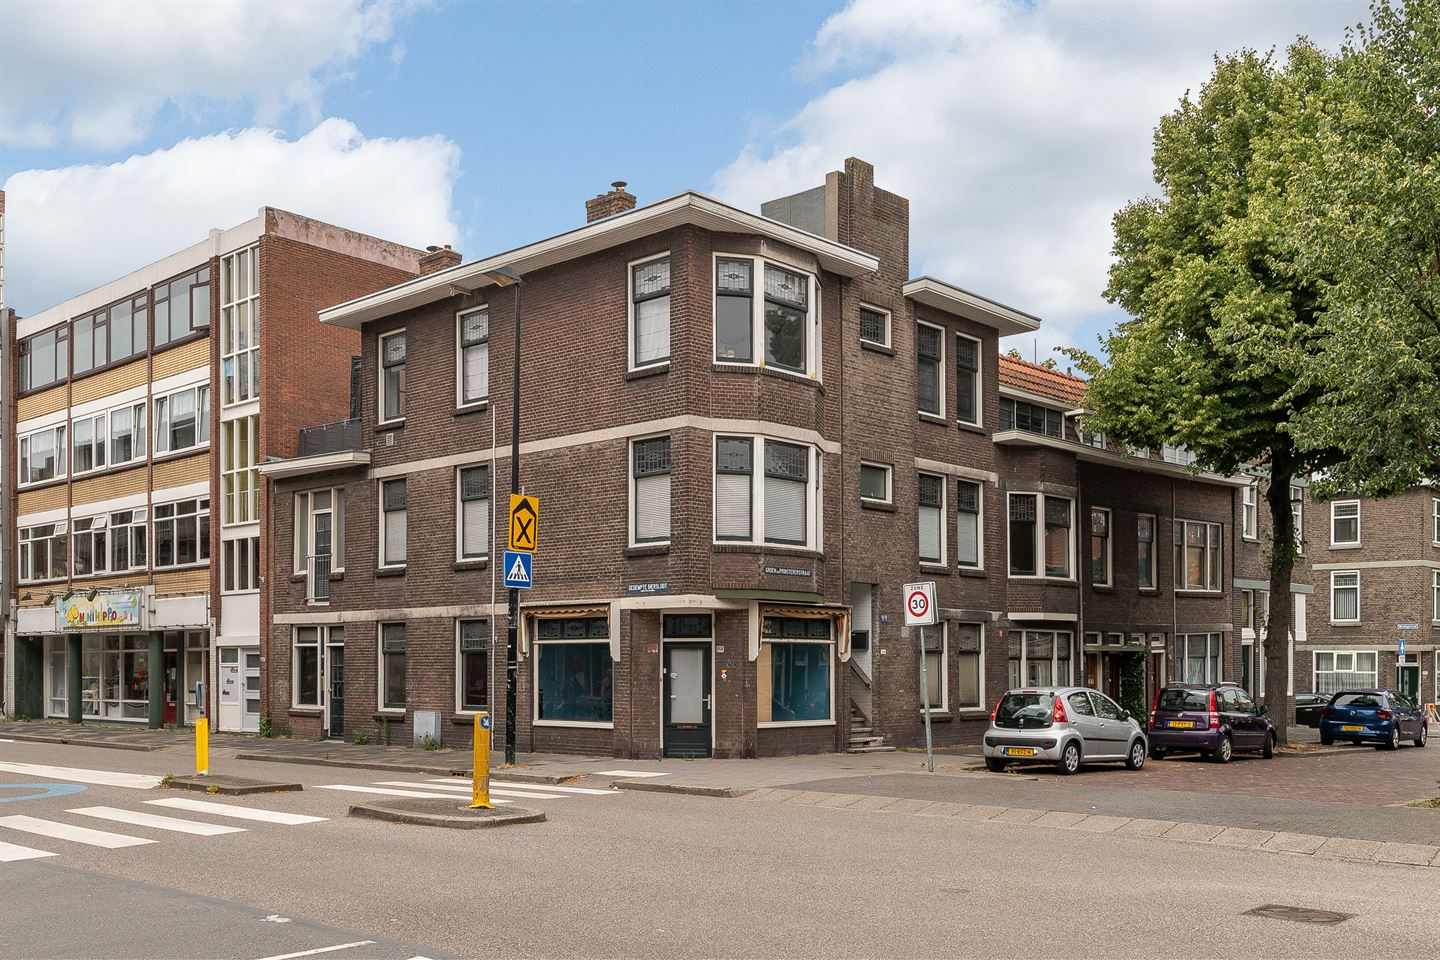 View photo 1 of Groen van Prinstererstraat 188